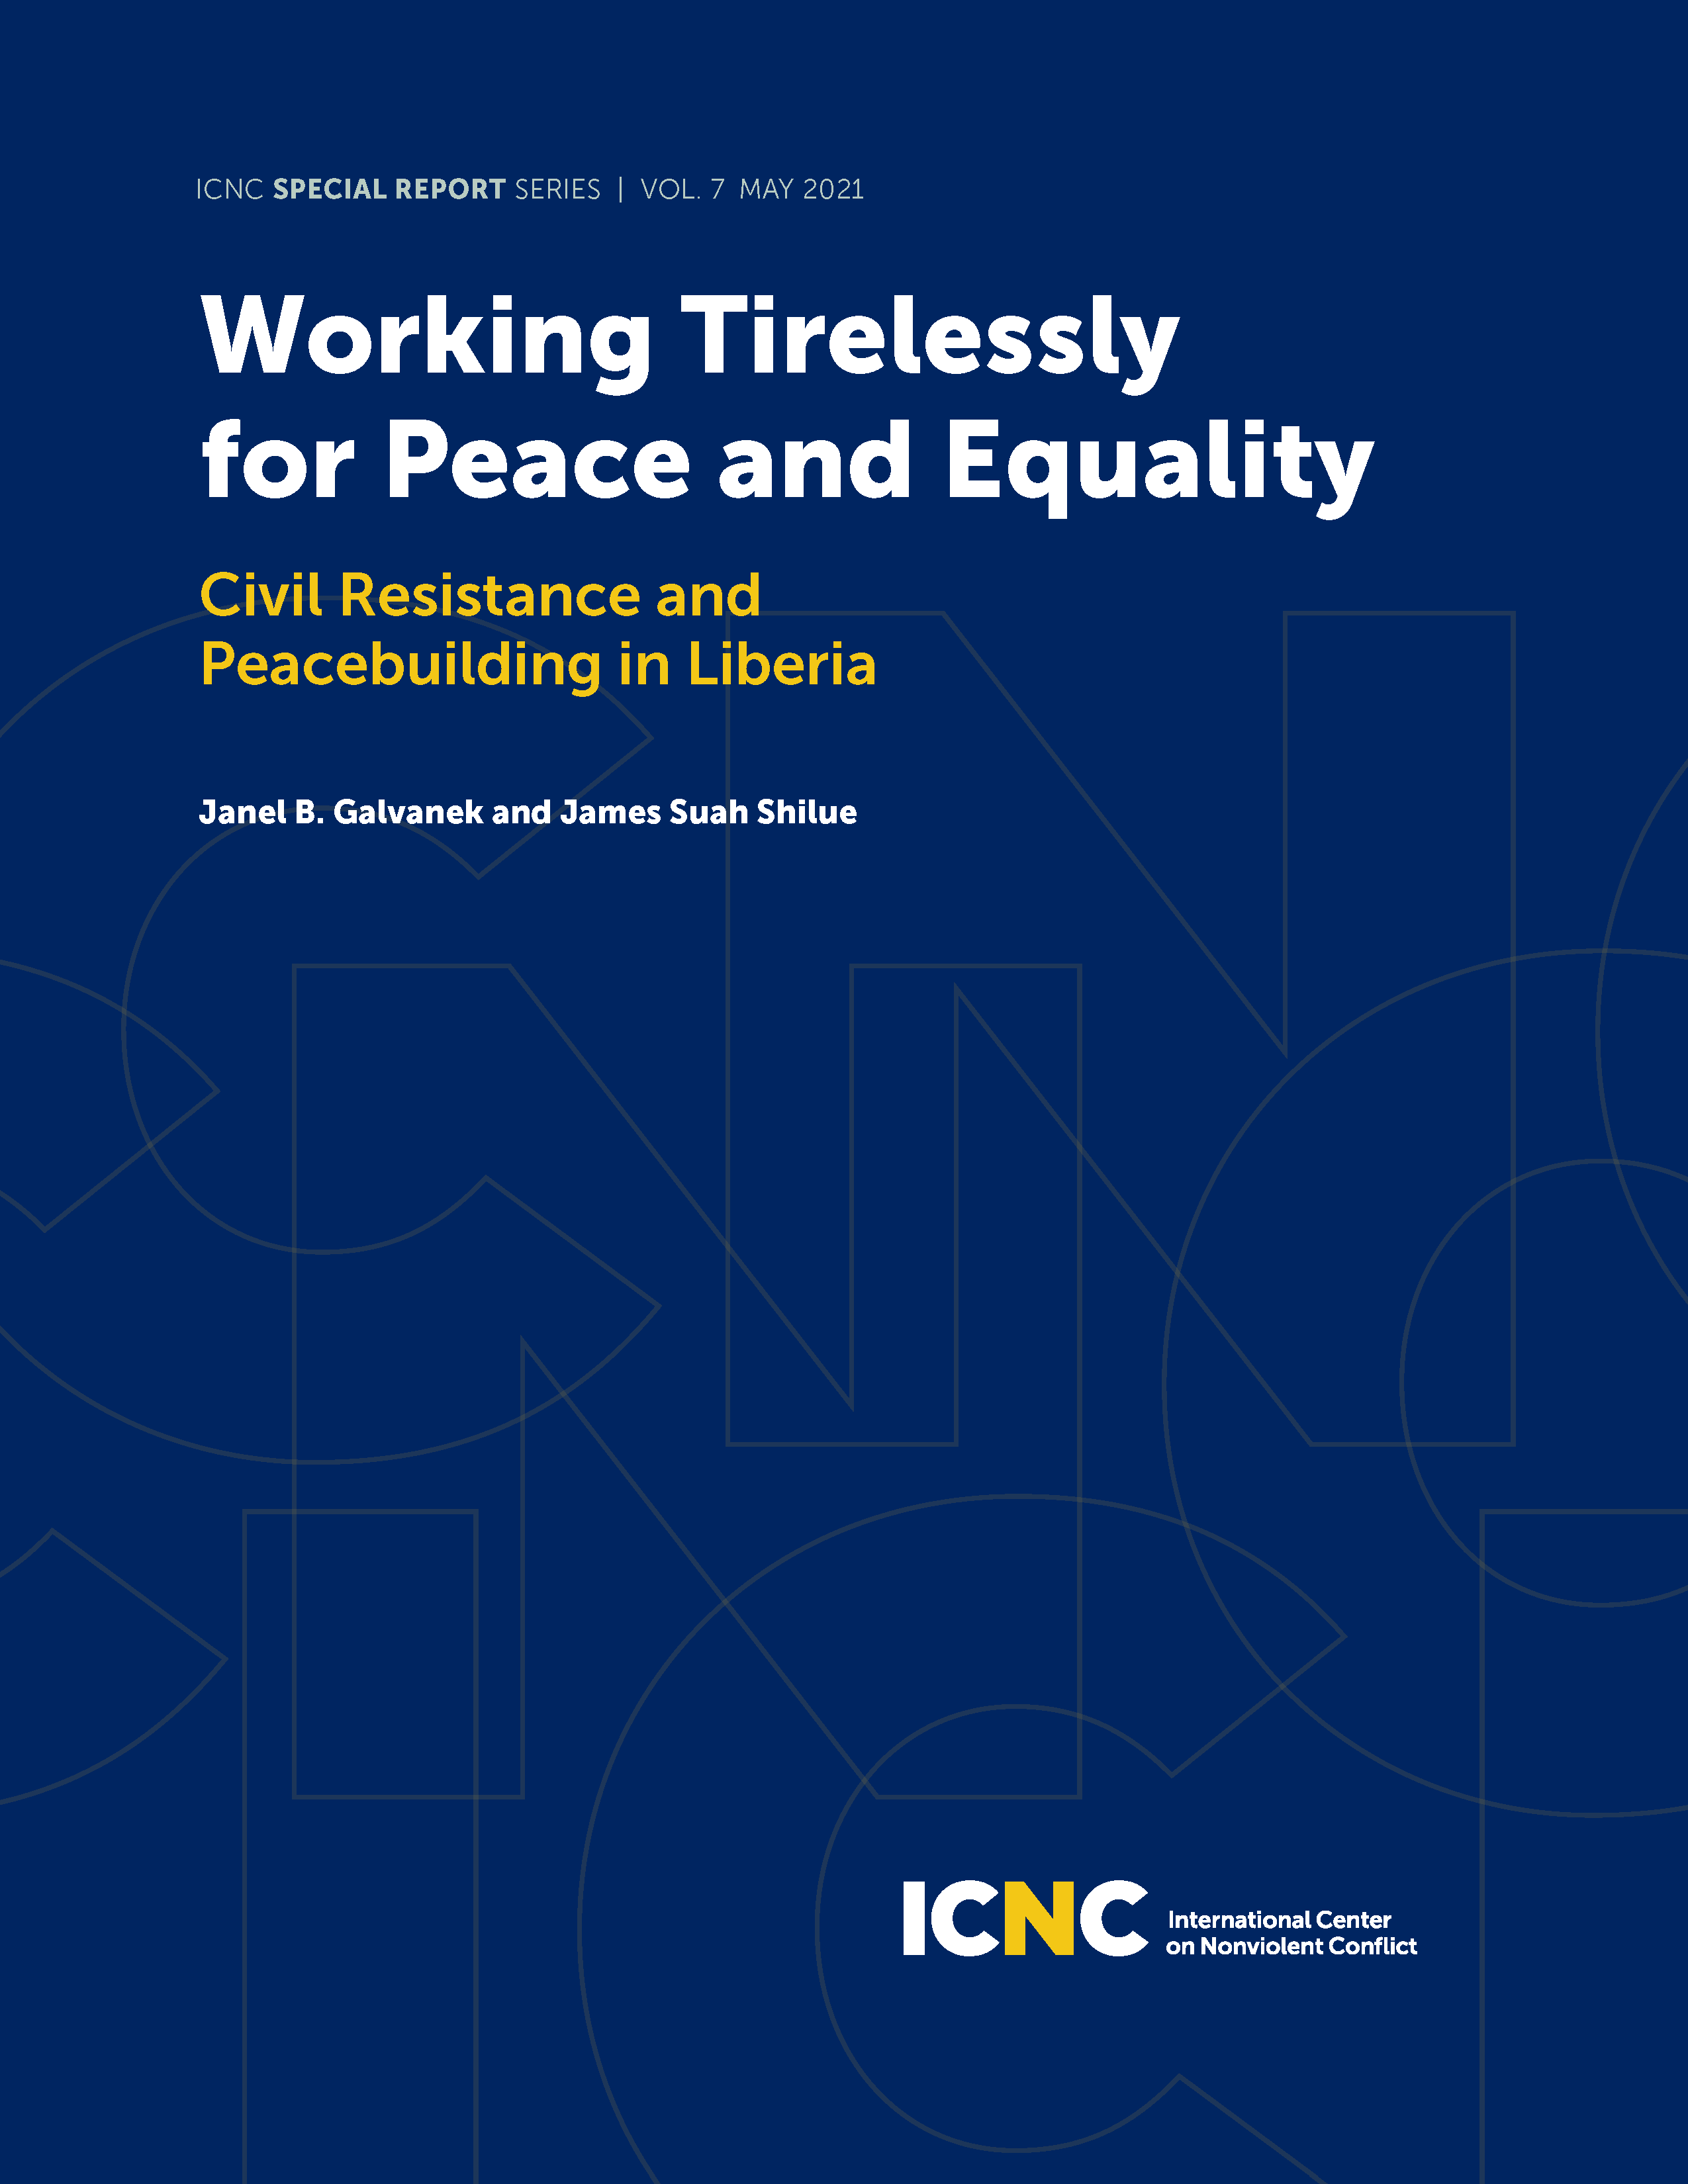 Working Tirelessly for Peace and Equality: Civil Resistance and Peacebuilding in Liberia